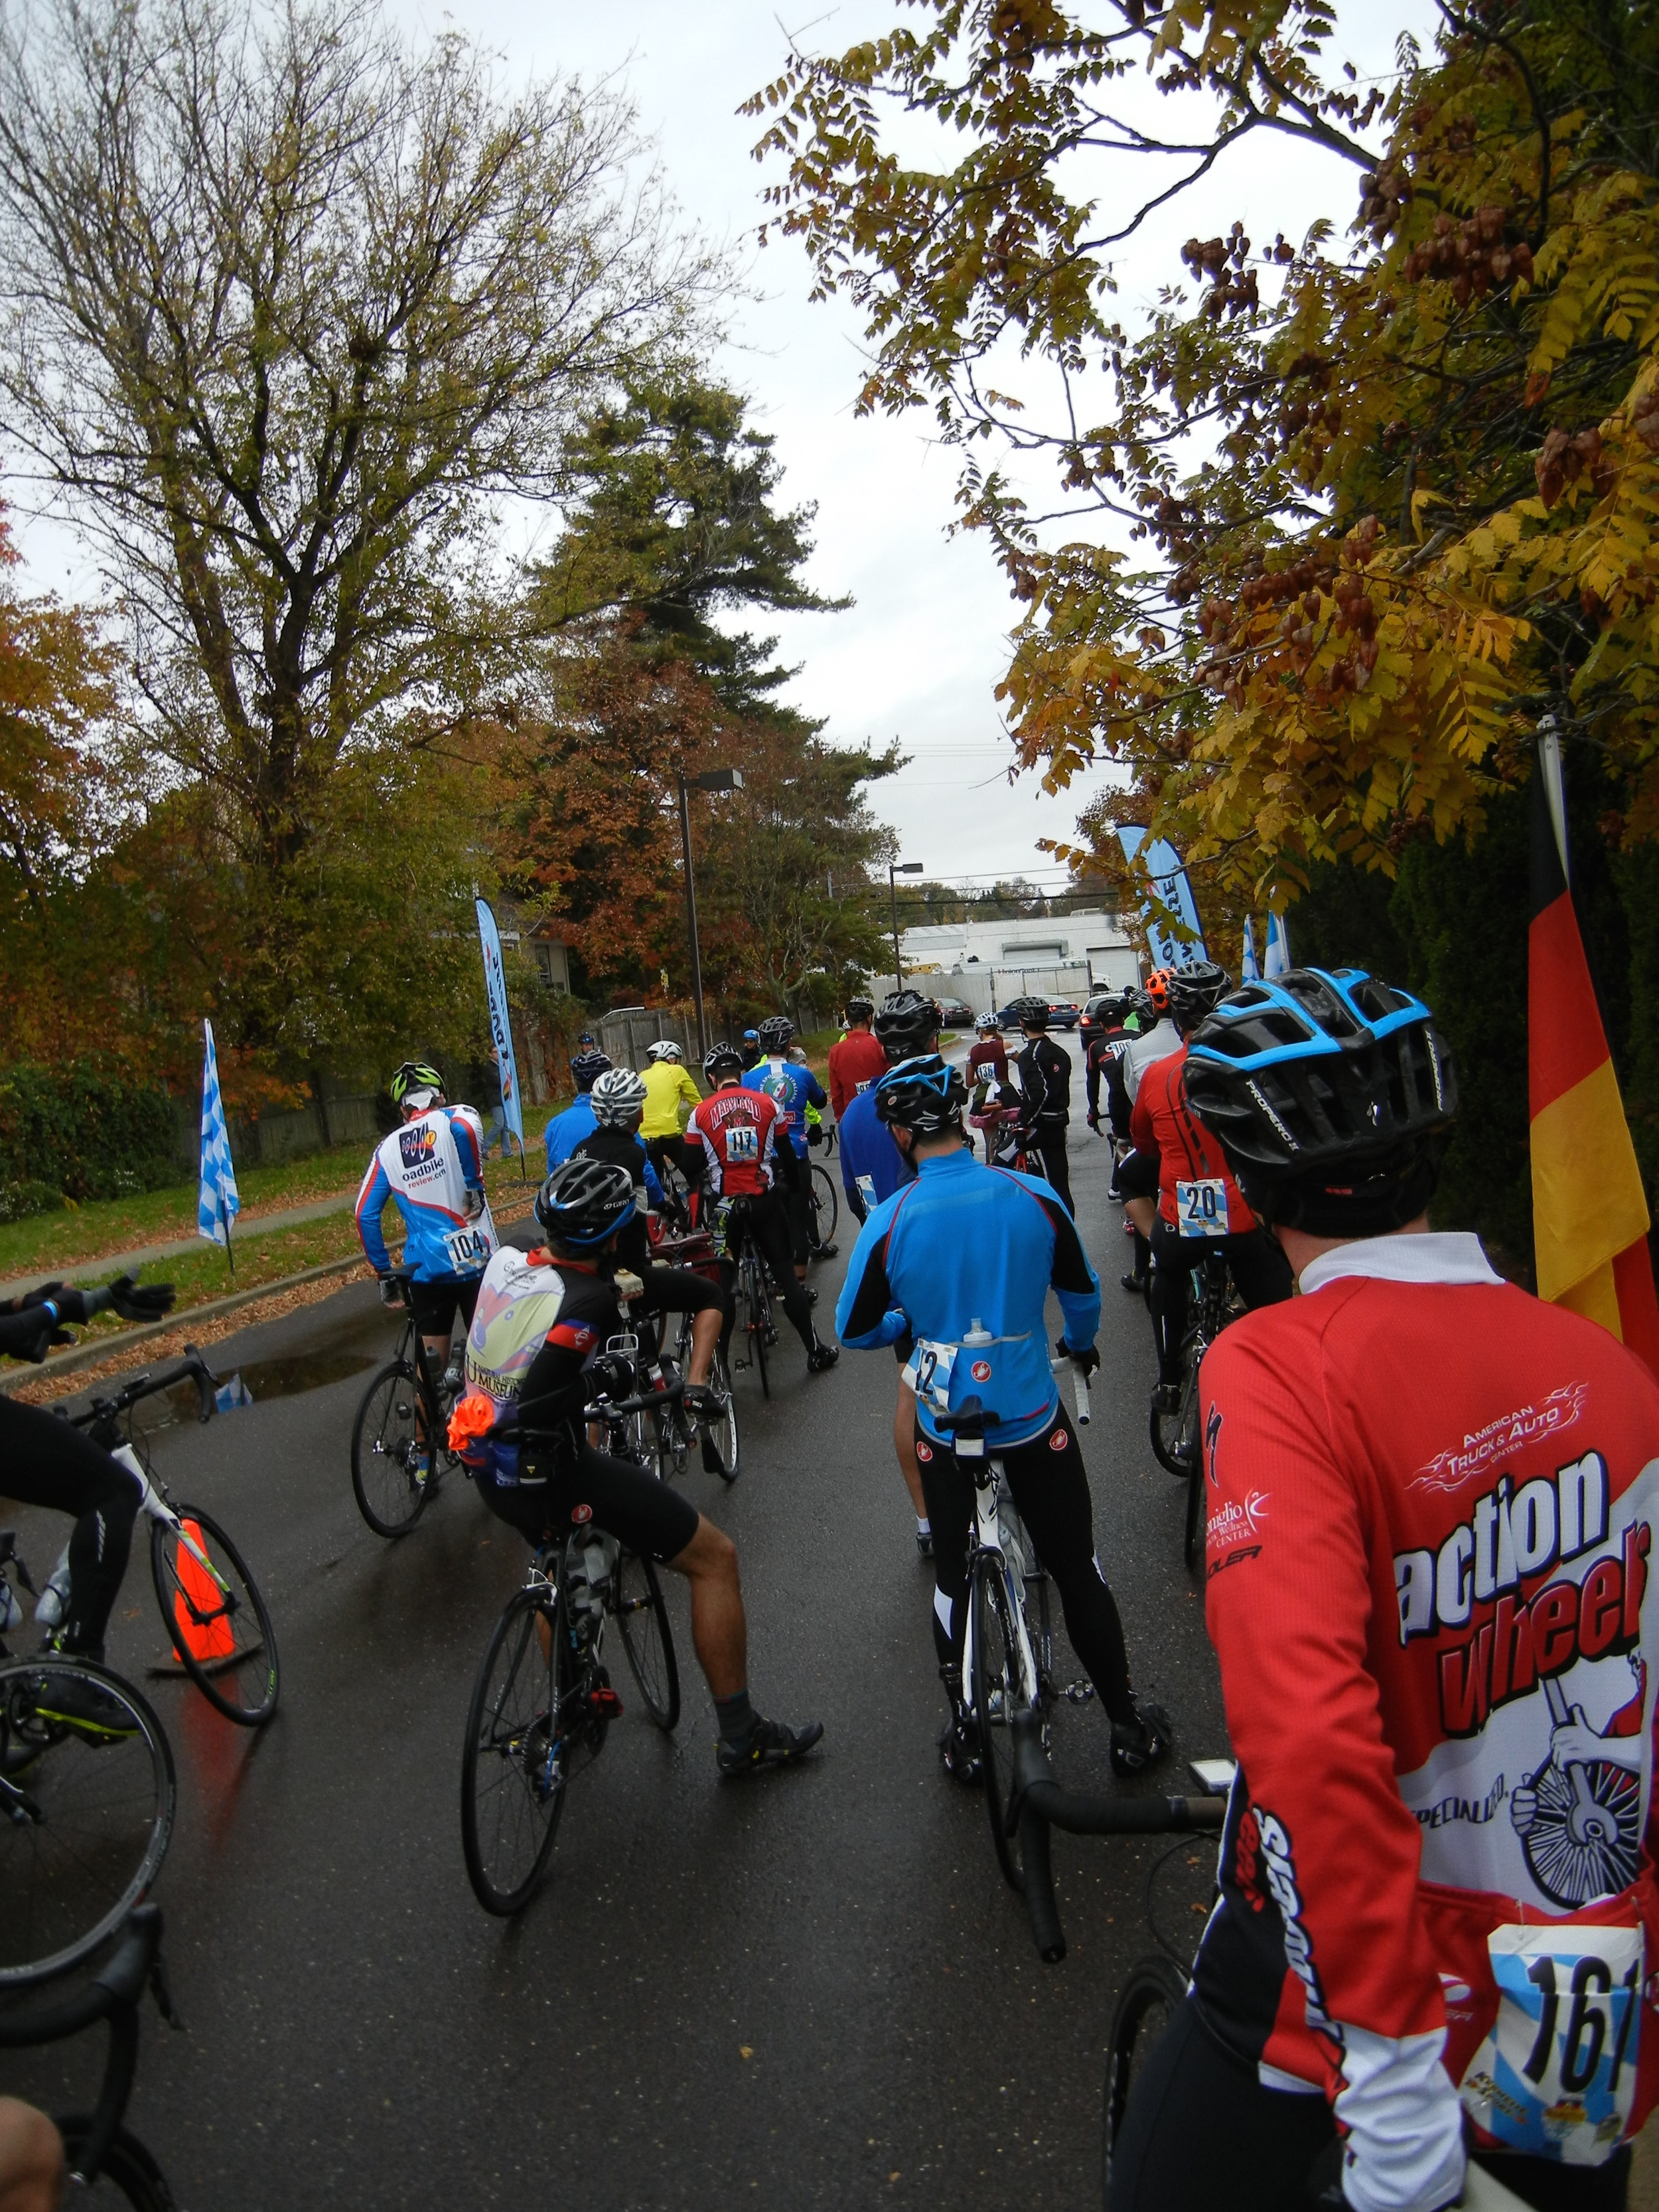 The start of the 2015 Oktoberfest ride saw wet roads but tepid temperatures.